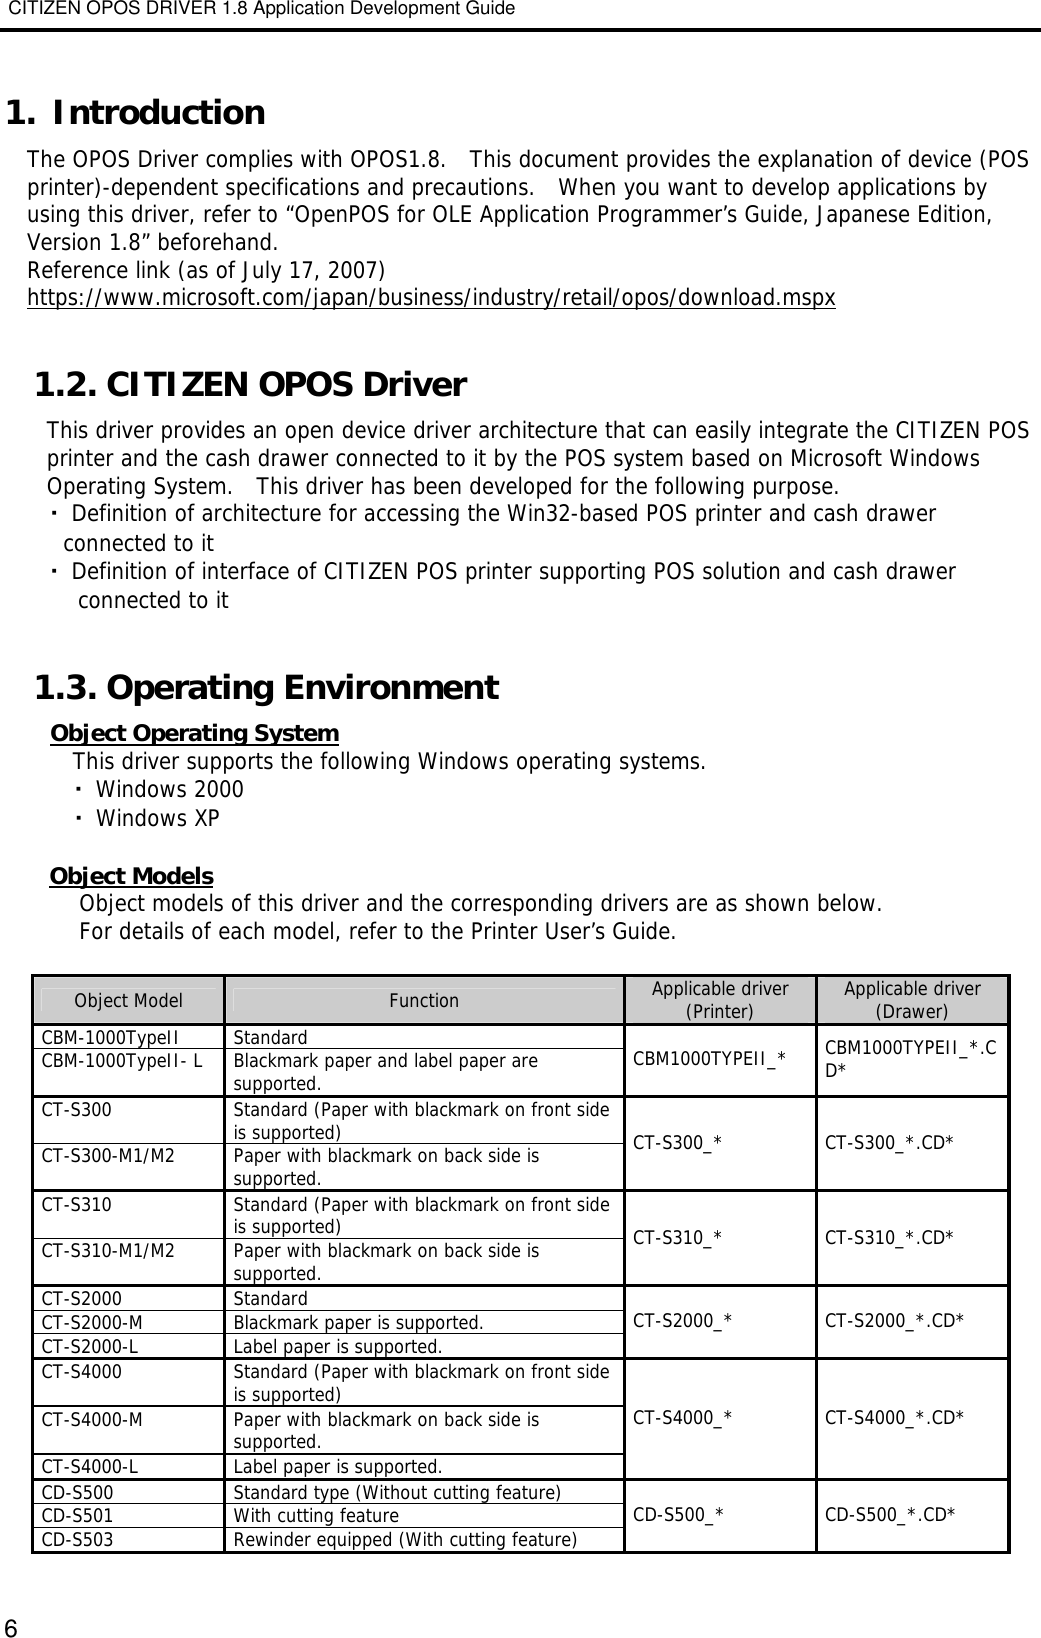 Citizen Systems Network Router 1 8 Users Manual アプリケーション開発